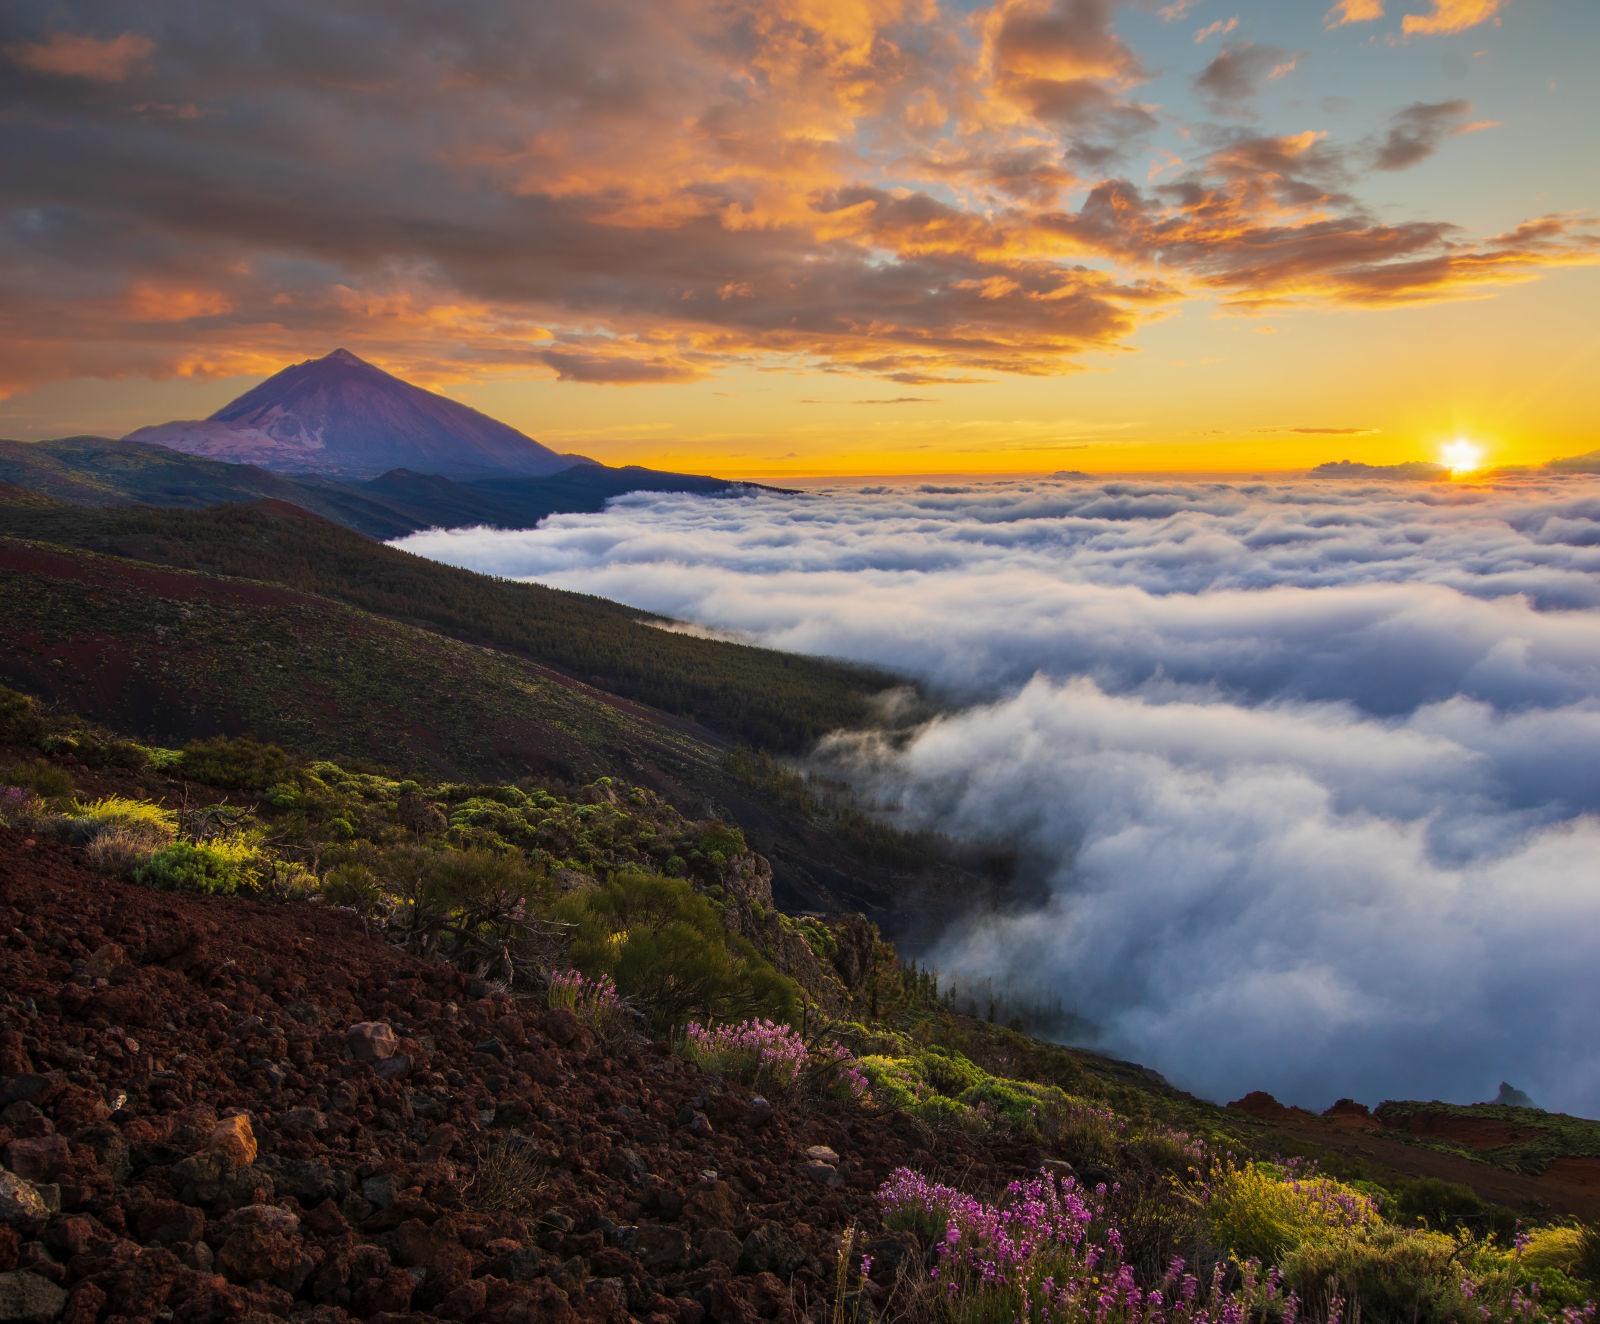 Afterglow, Atmosphere, Canary Islands